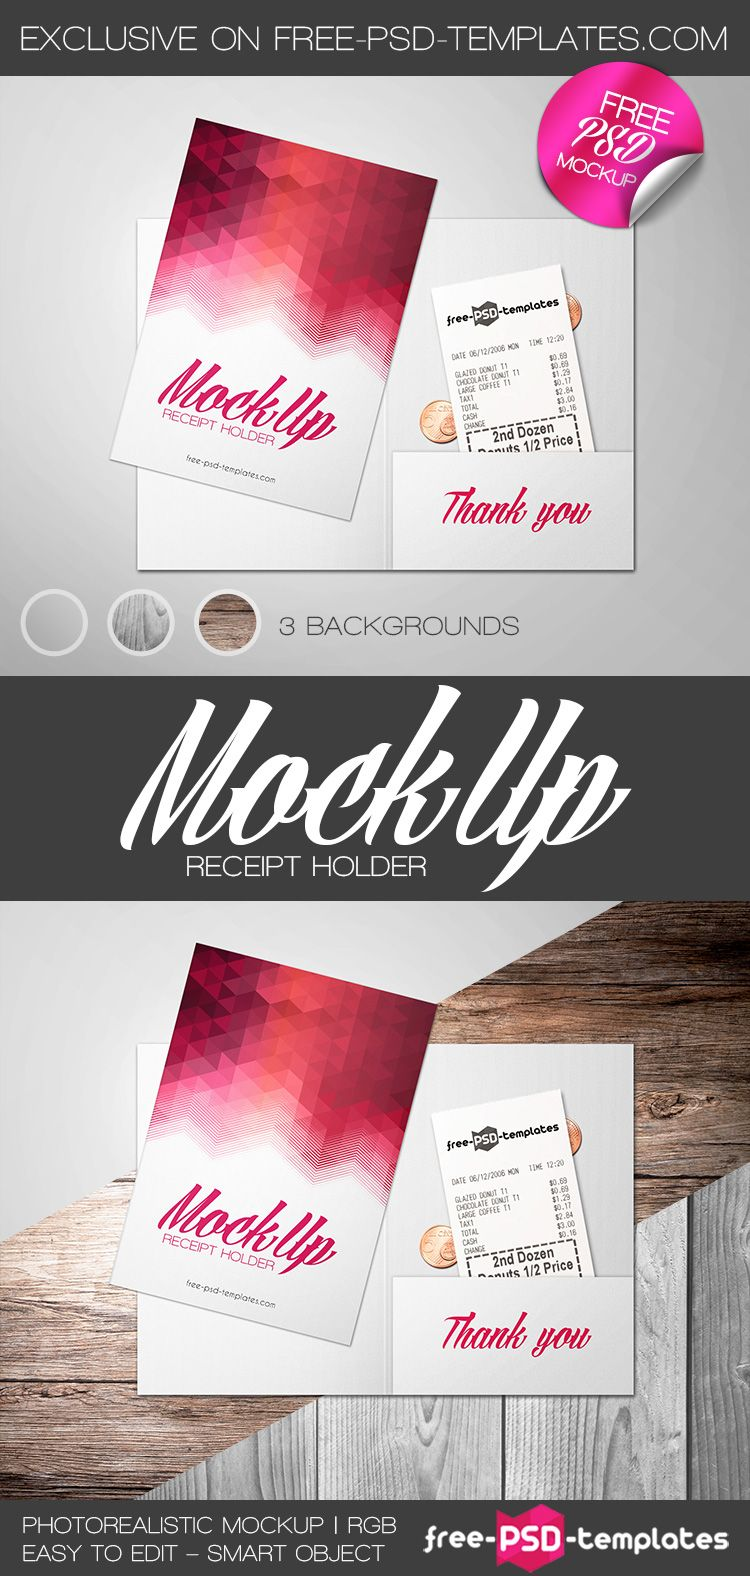 Free Receipt Holder Mock Up In Psd Psd Template Free Mockup Free Psd Psd